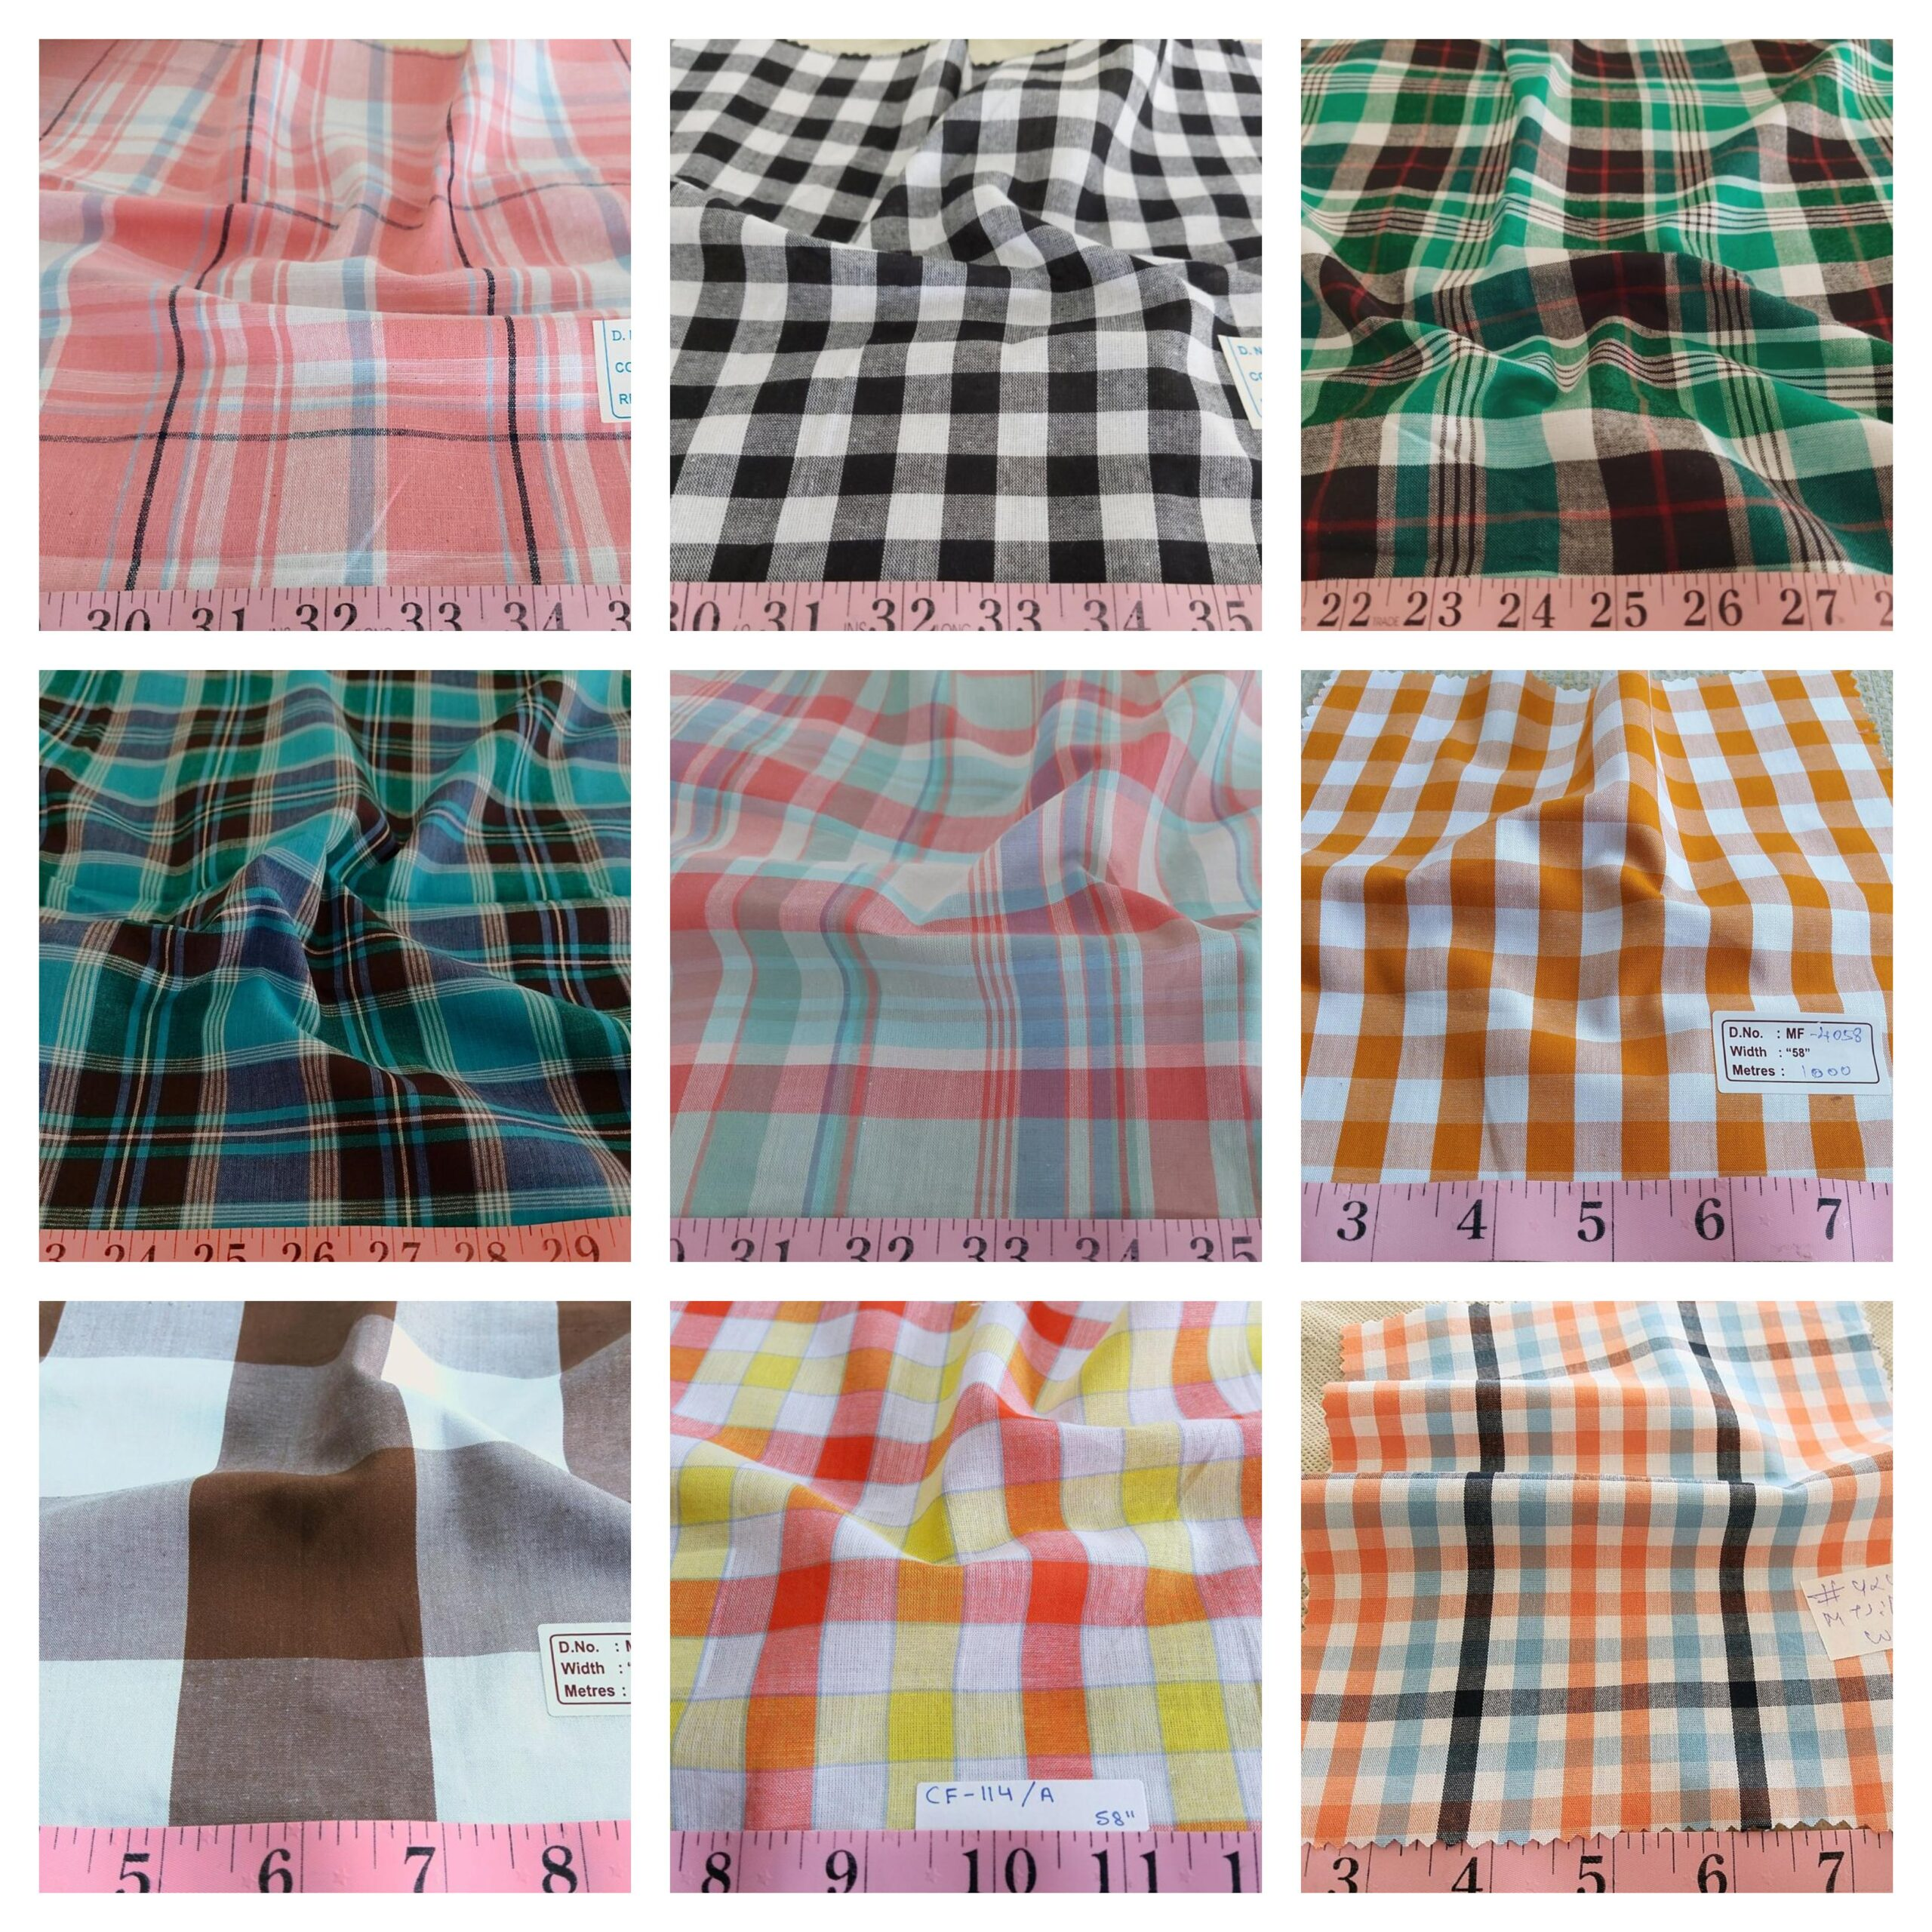 Madras Plaid and Plaid fabrics collection updated at FabricOnlineStore.com, with the latest colors and patterns, for Spring 2021